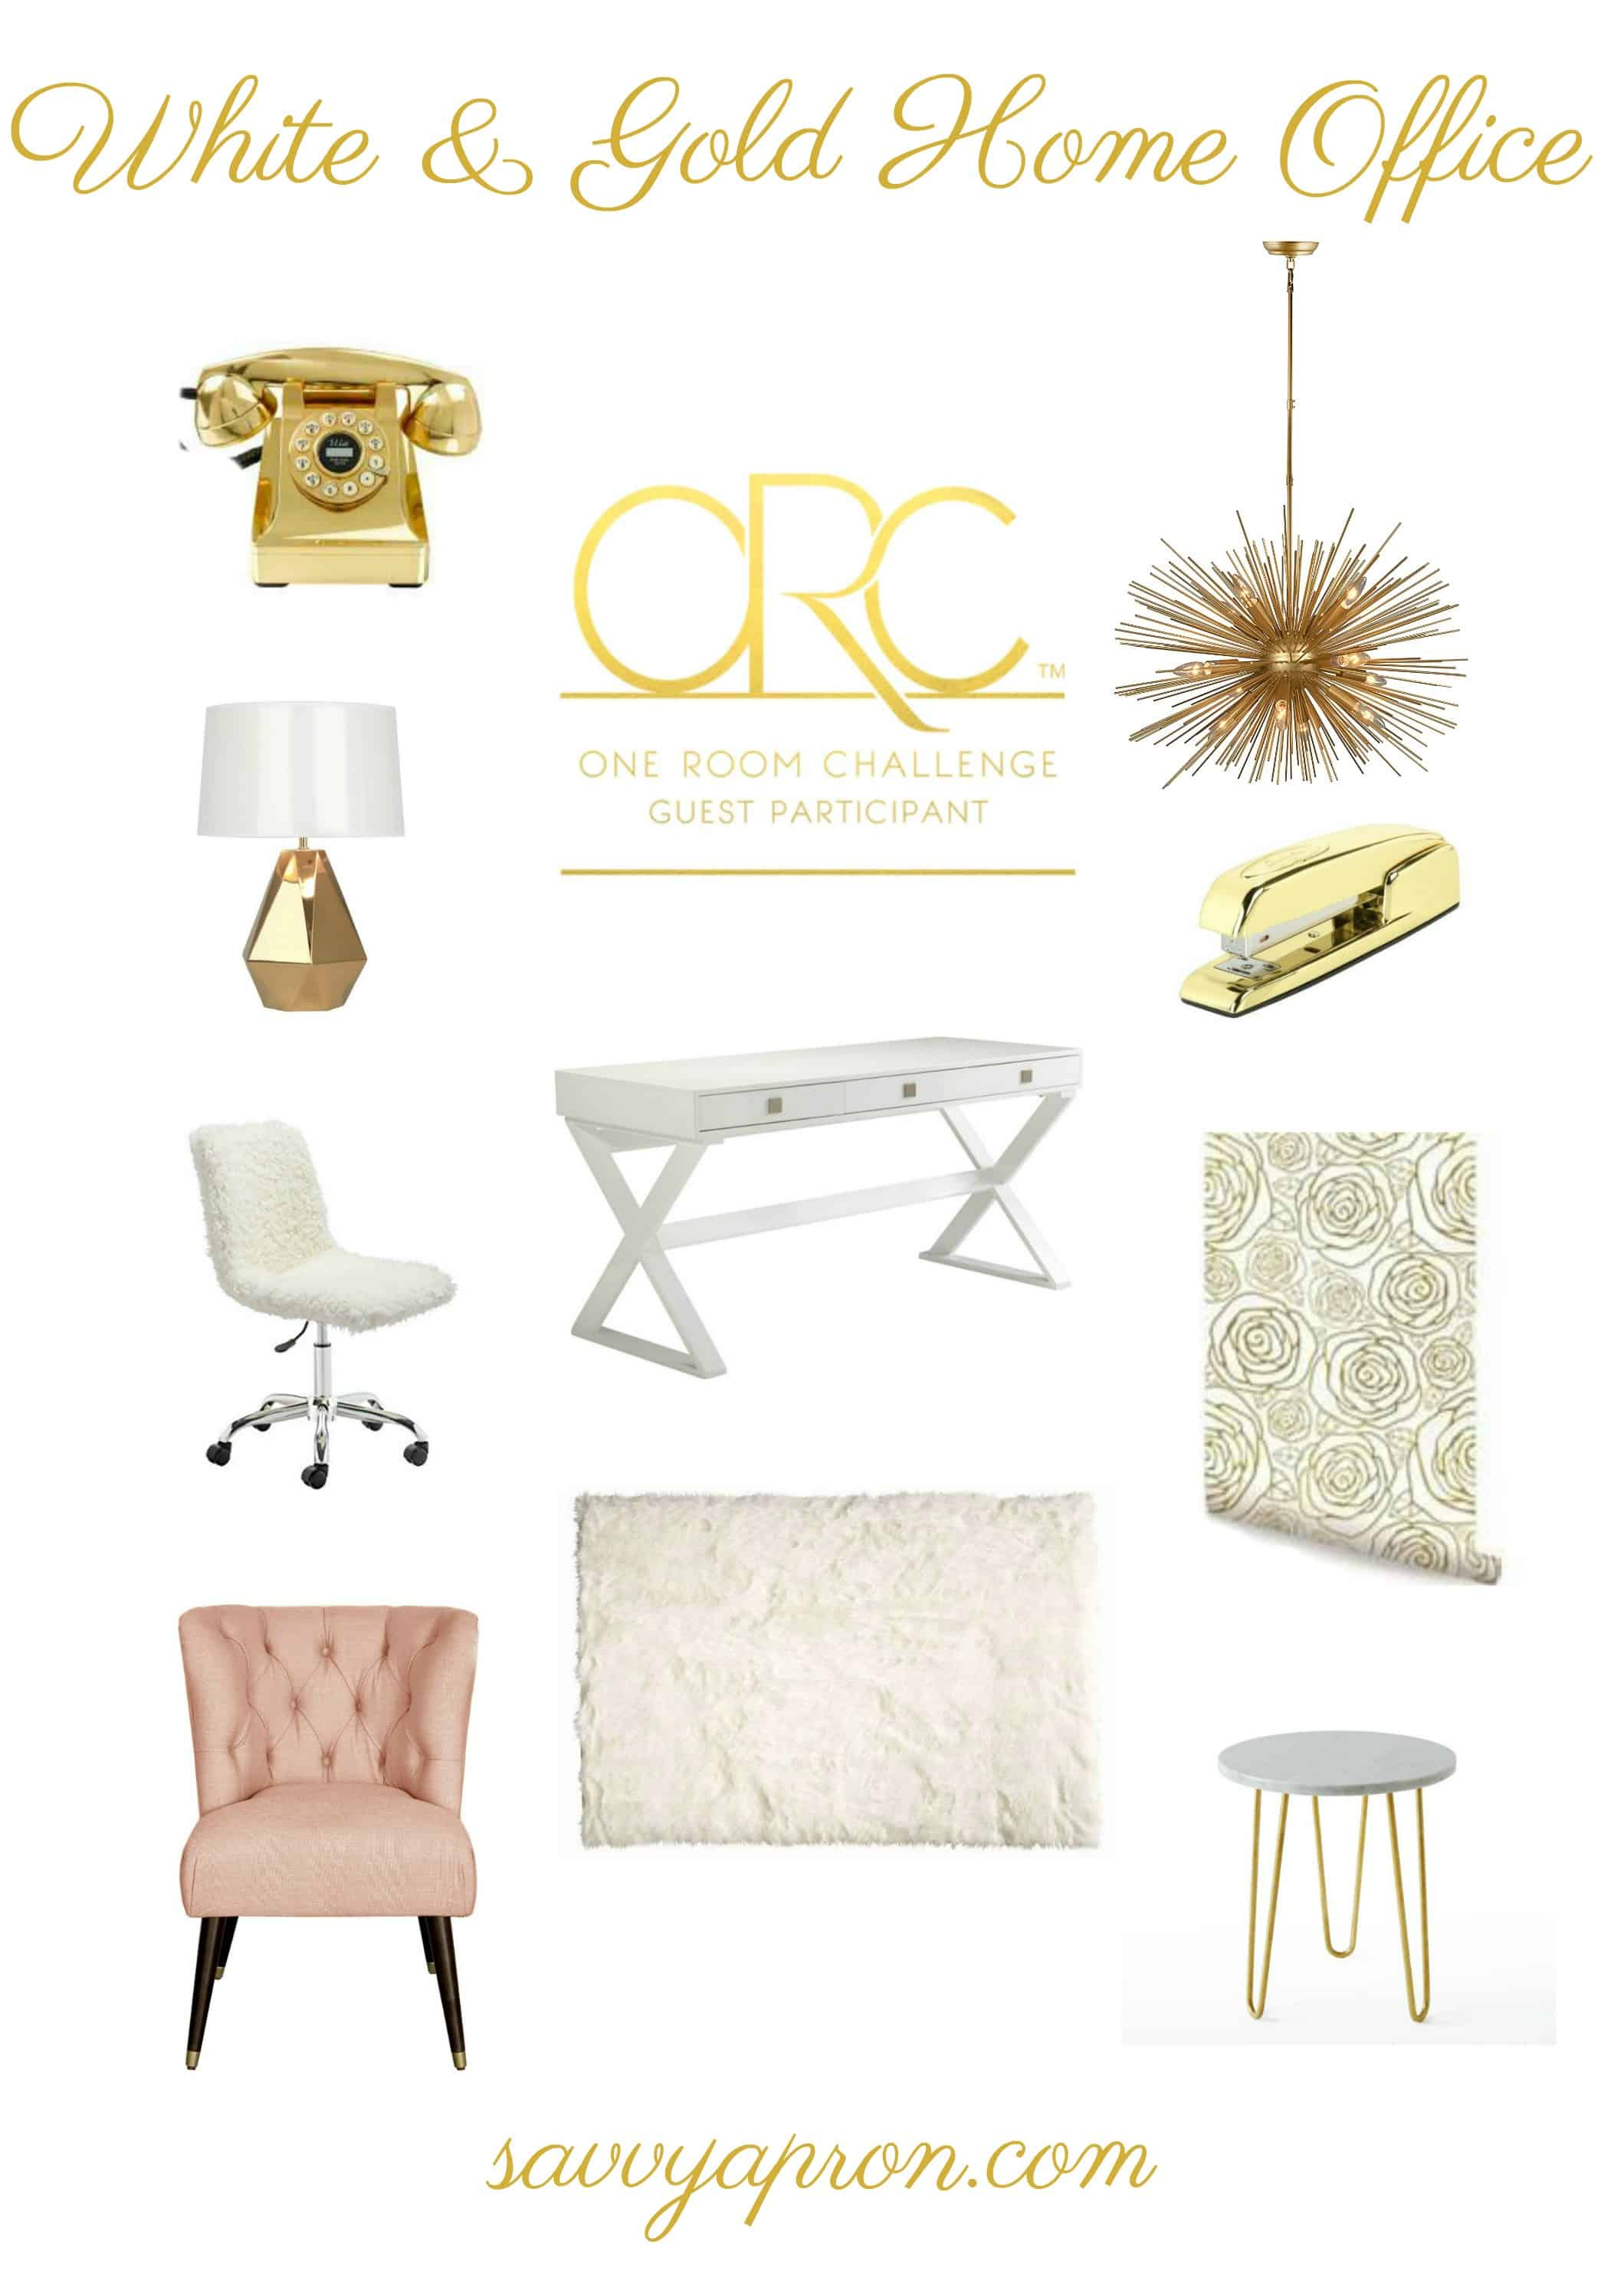 One Room Challenge-White & Gold Home Office